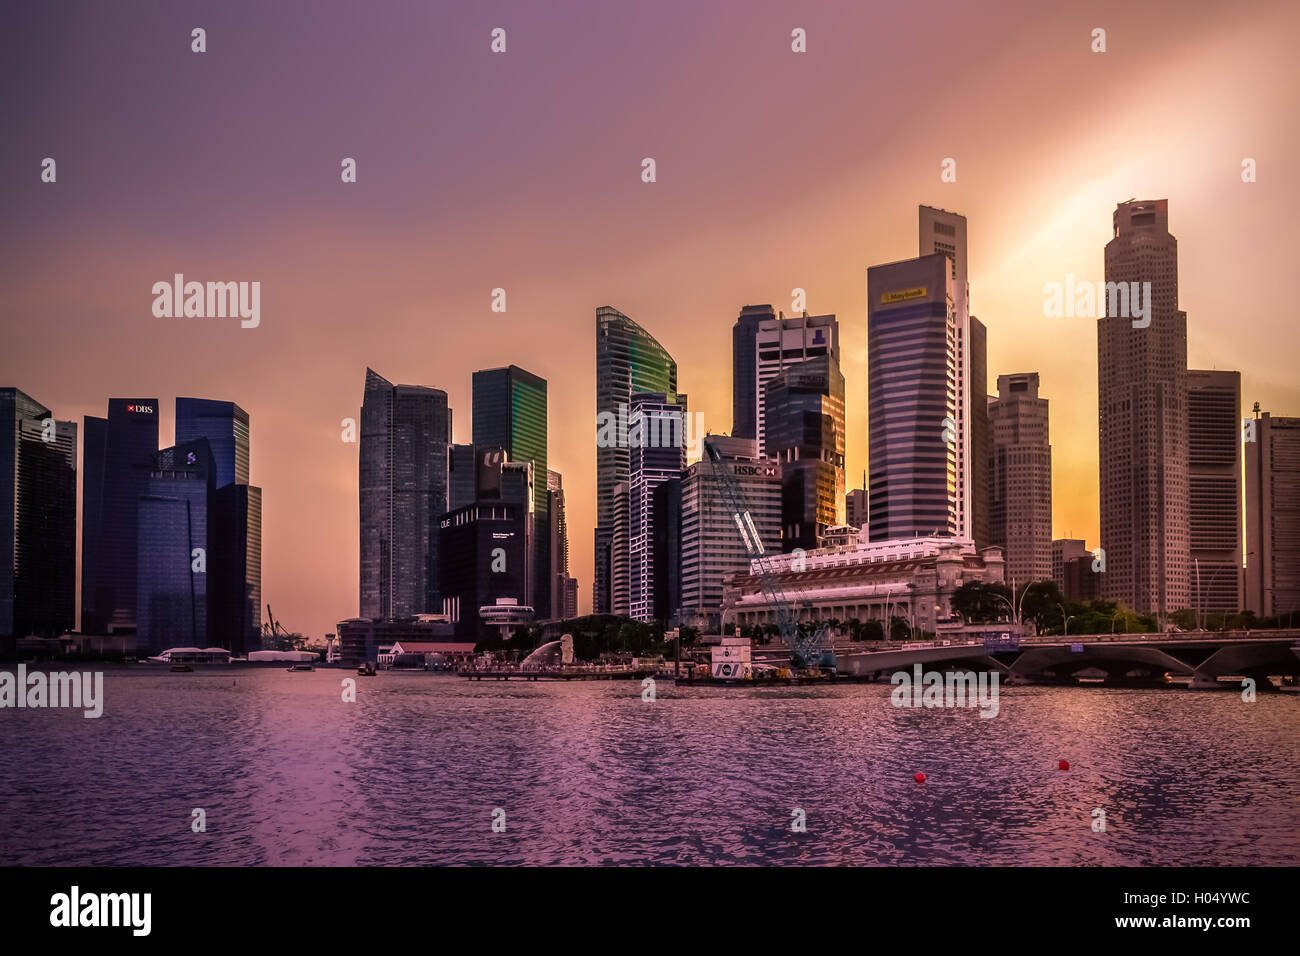 Singapore, city, night, lights, travel, destination, romantic, reflection, reflections - Stock Image